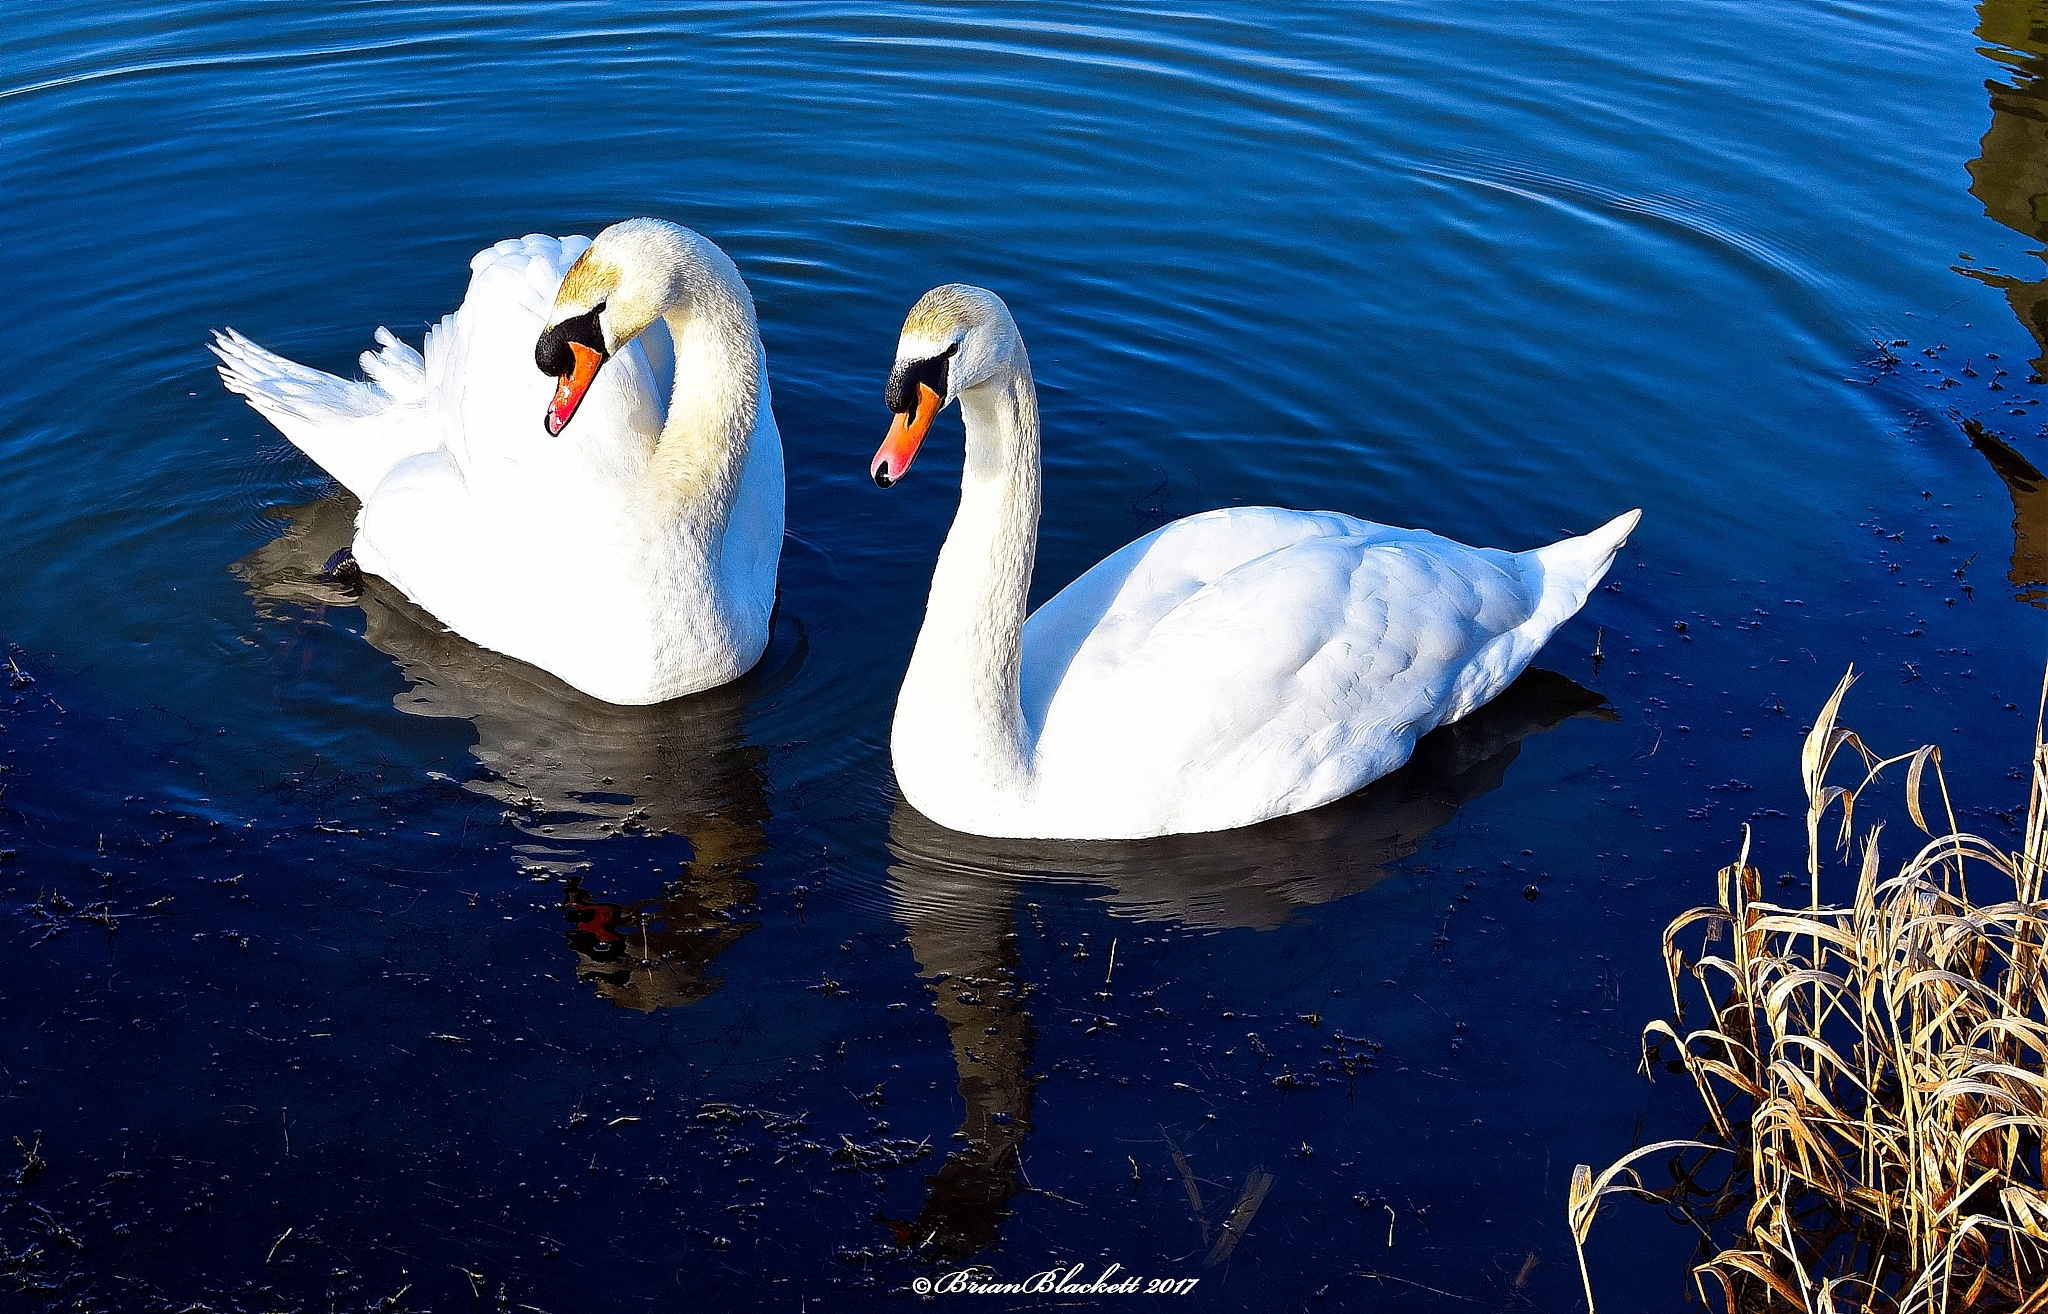 Swans by brianblackett